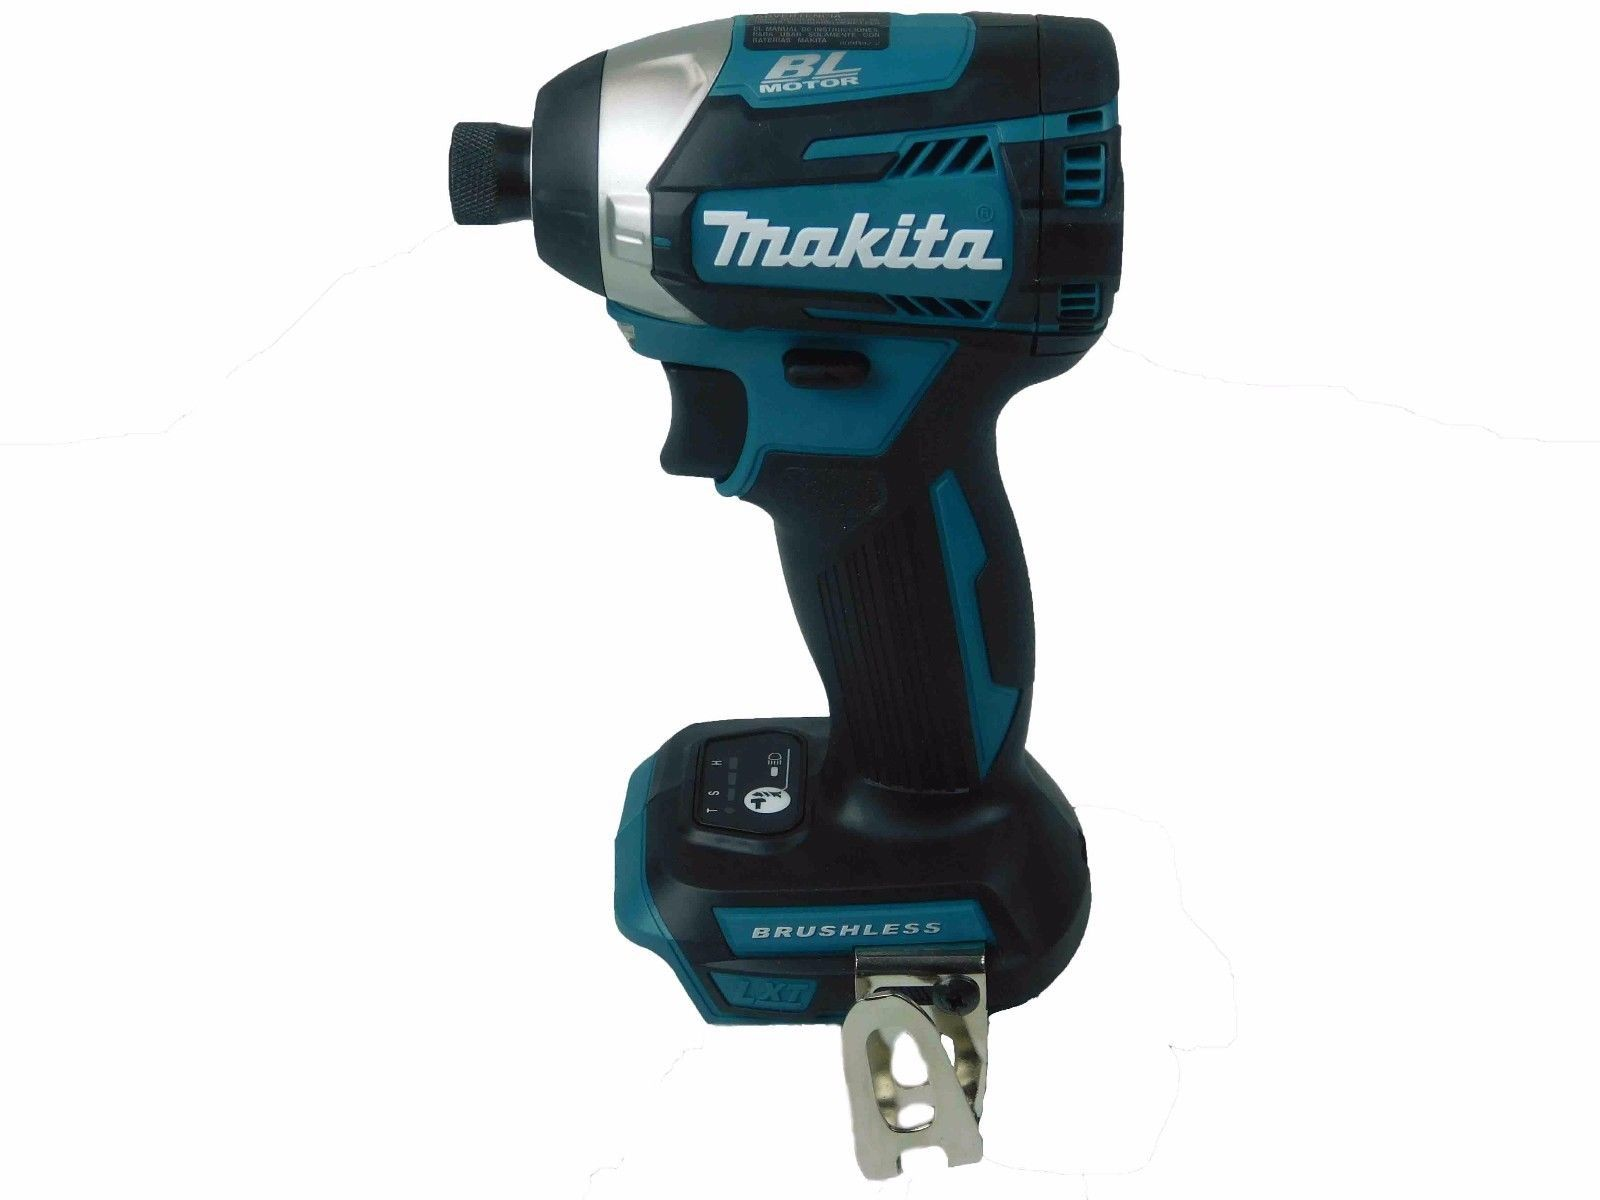 Makita-XDT14Z-18V-LXT-1-4inch-3-Speed-Brushless-Impact-Driver-Bare-Tool-image-1